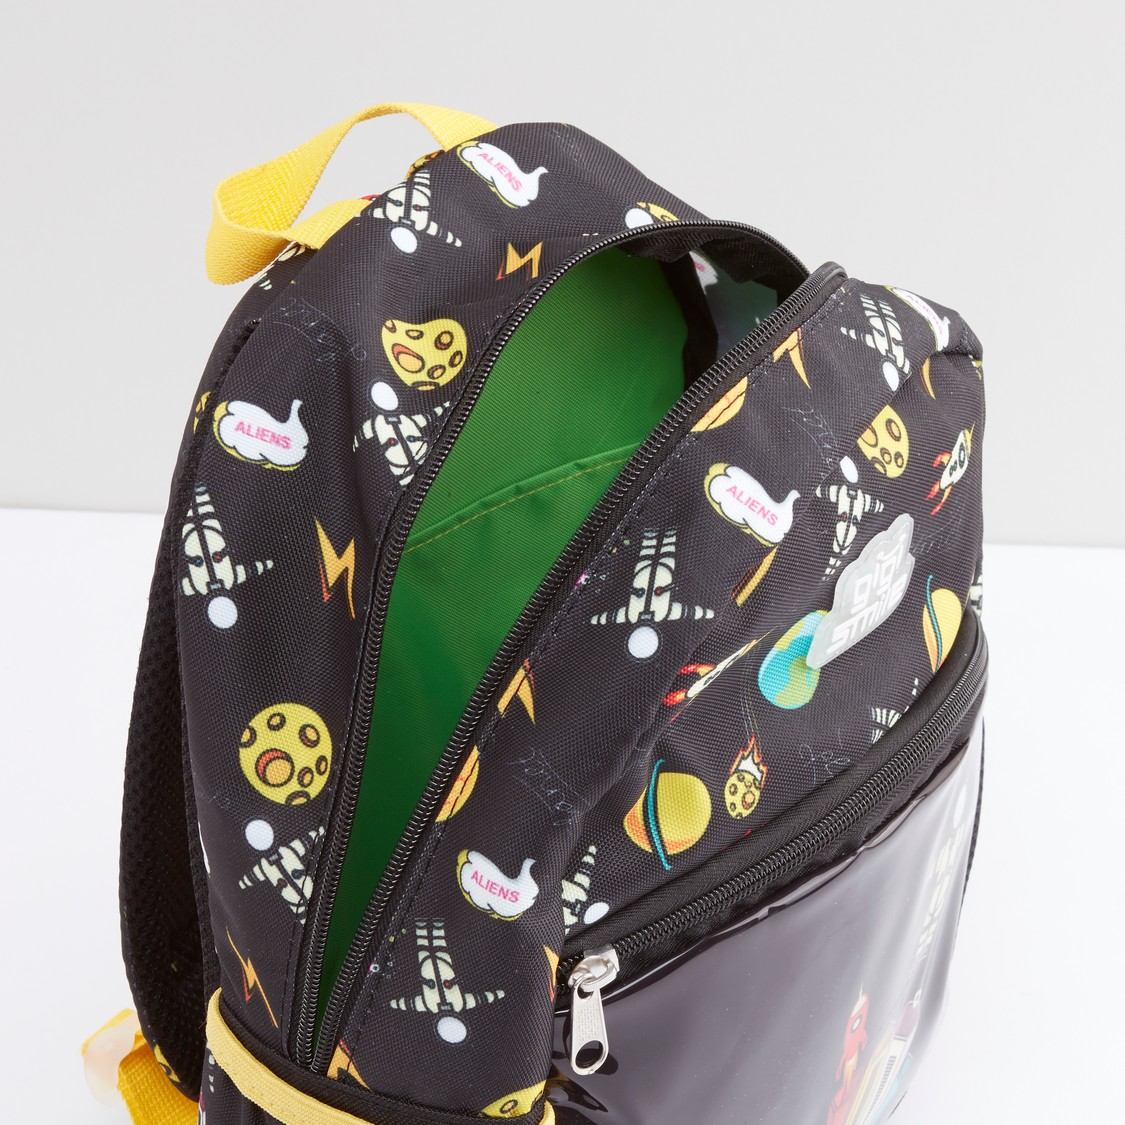 Printed Backpack with Zip Closure and Adjustable Straps